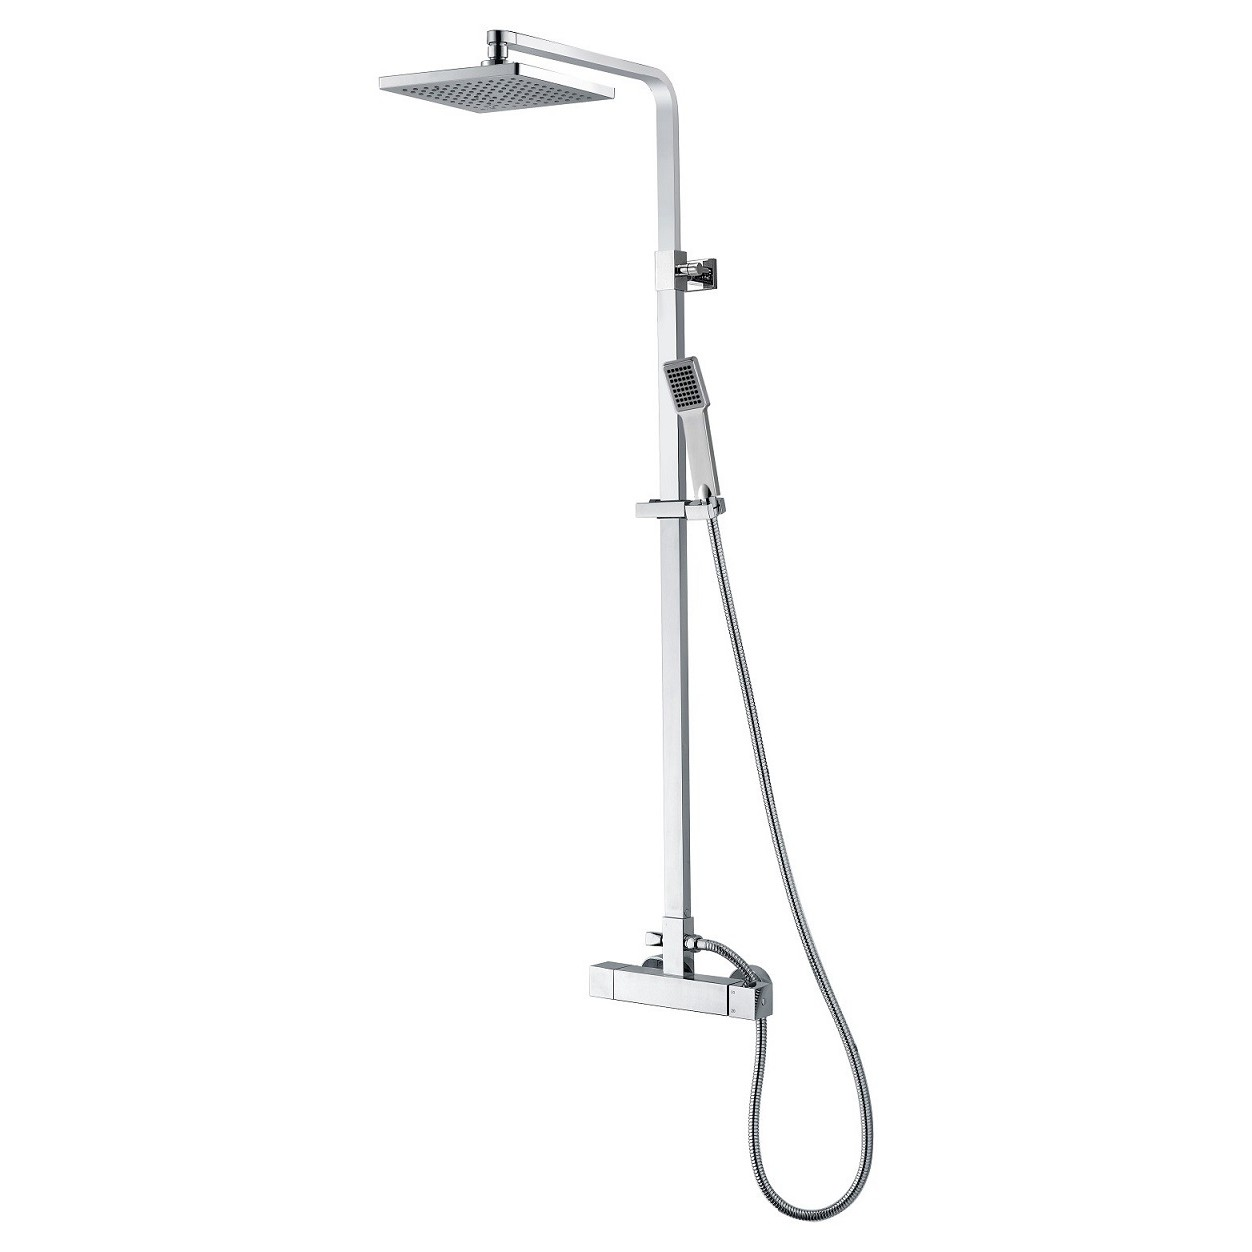 Ariel Comfort Design All in One Tub and Shower Faucet with Hand ...